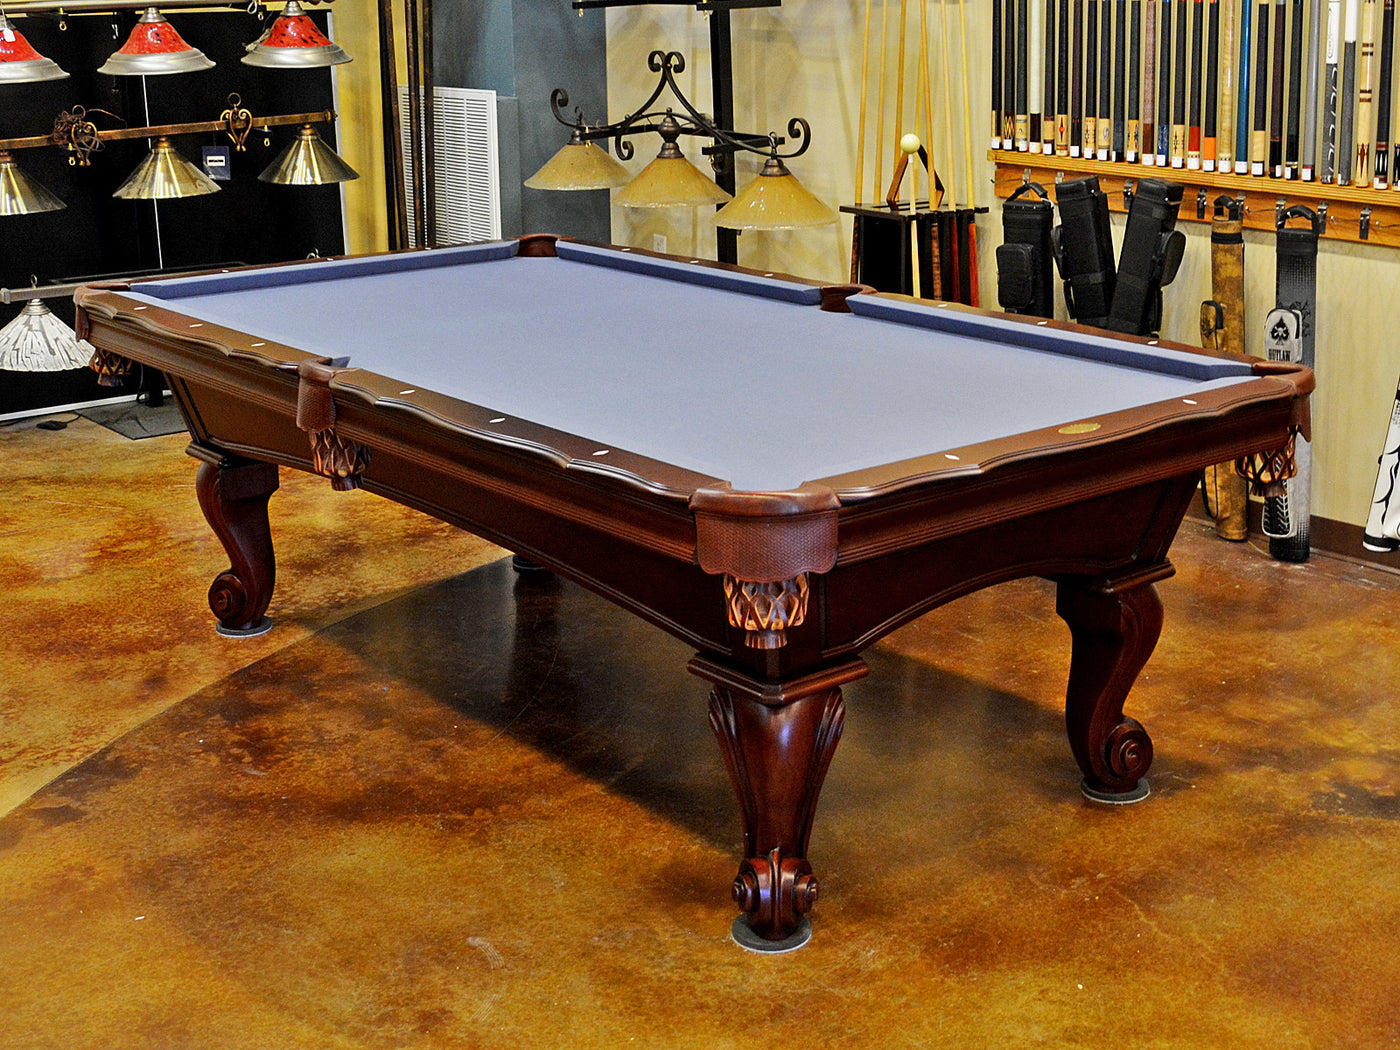 Delicieux Olhausen Santa Anna Pool Table ...